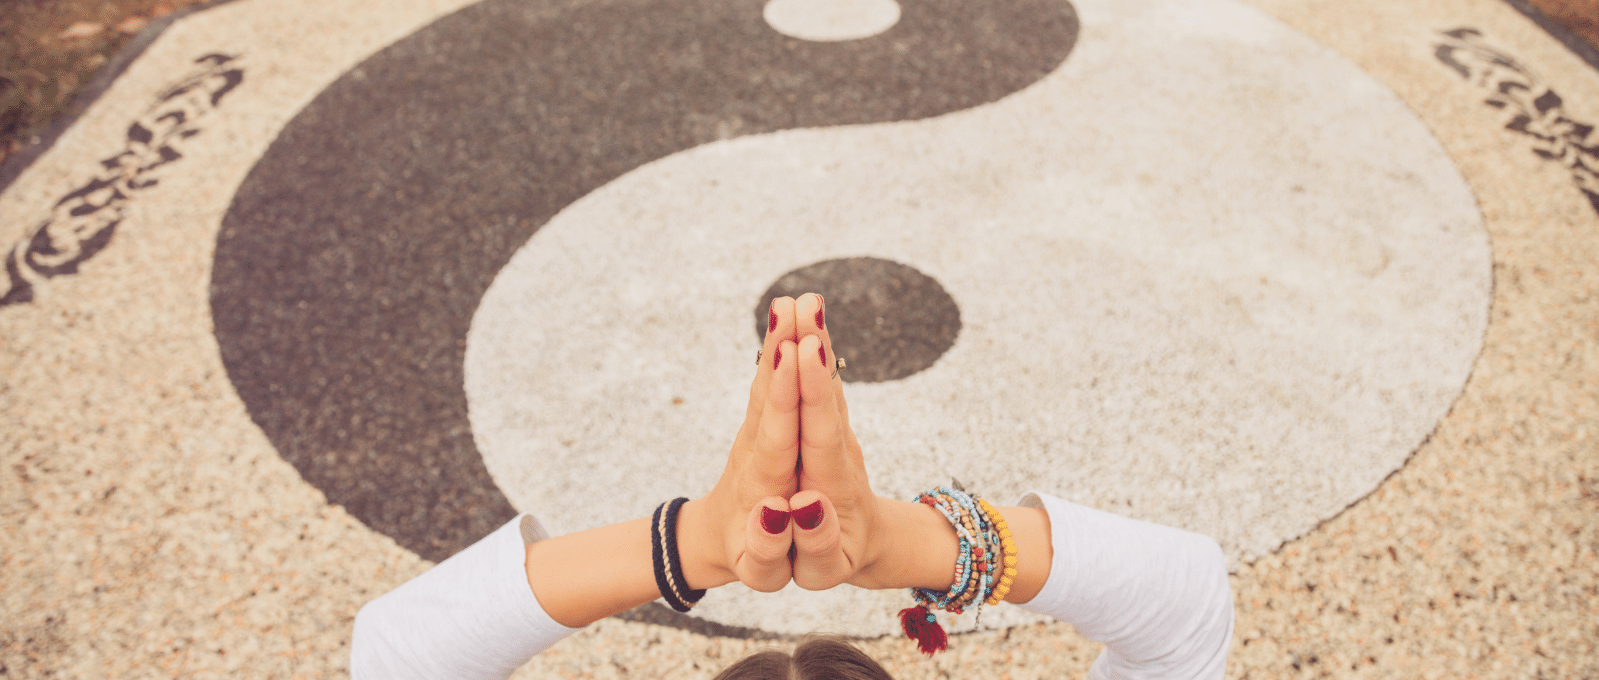 The meaning of yin and yang in yoga